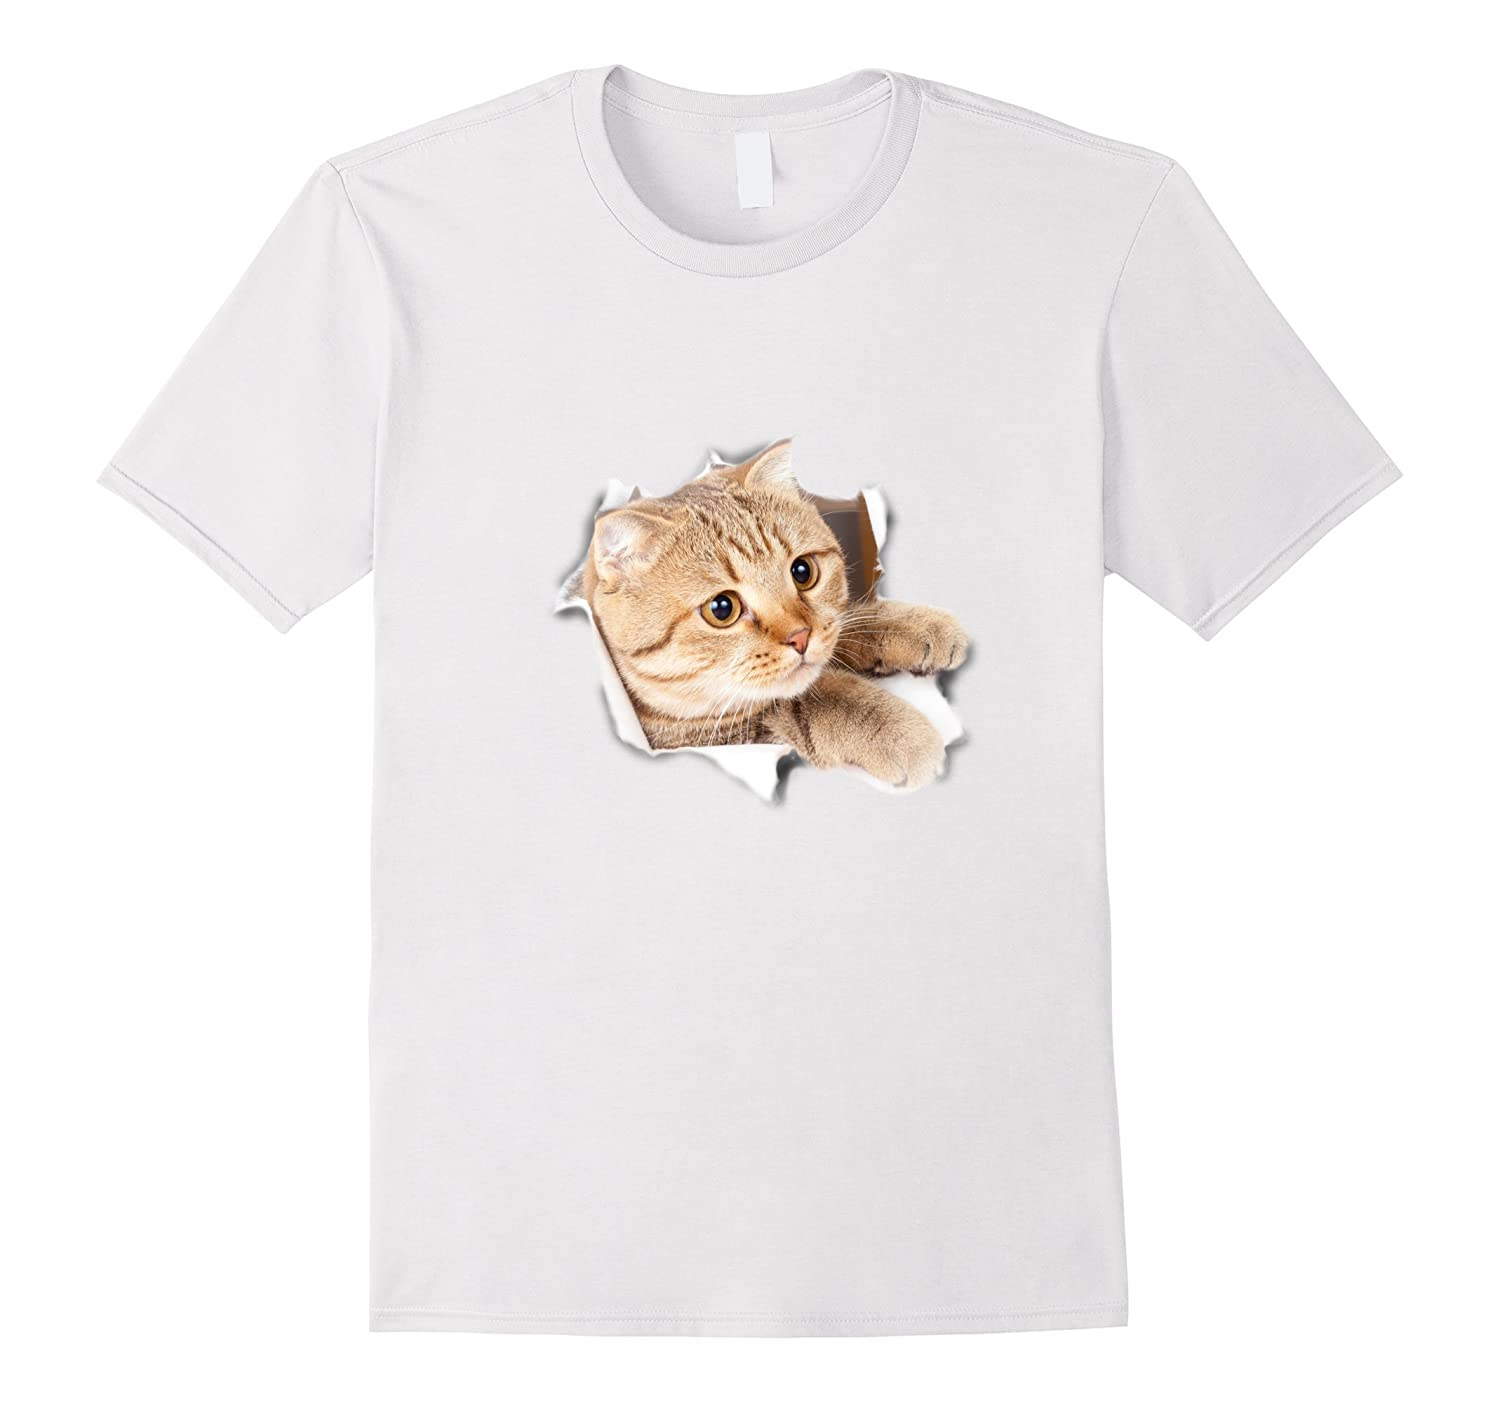 42a97cc3a 3D Cat T-Shirt 3D Cat Sticker T-Shirt Funny Cat 3D Shirt-PL – Polozatee